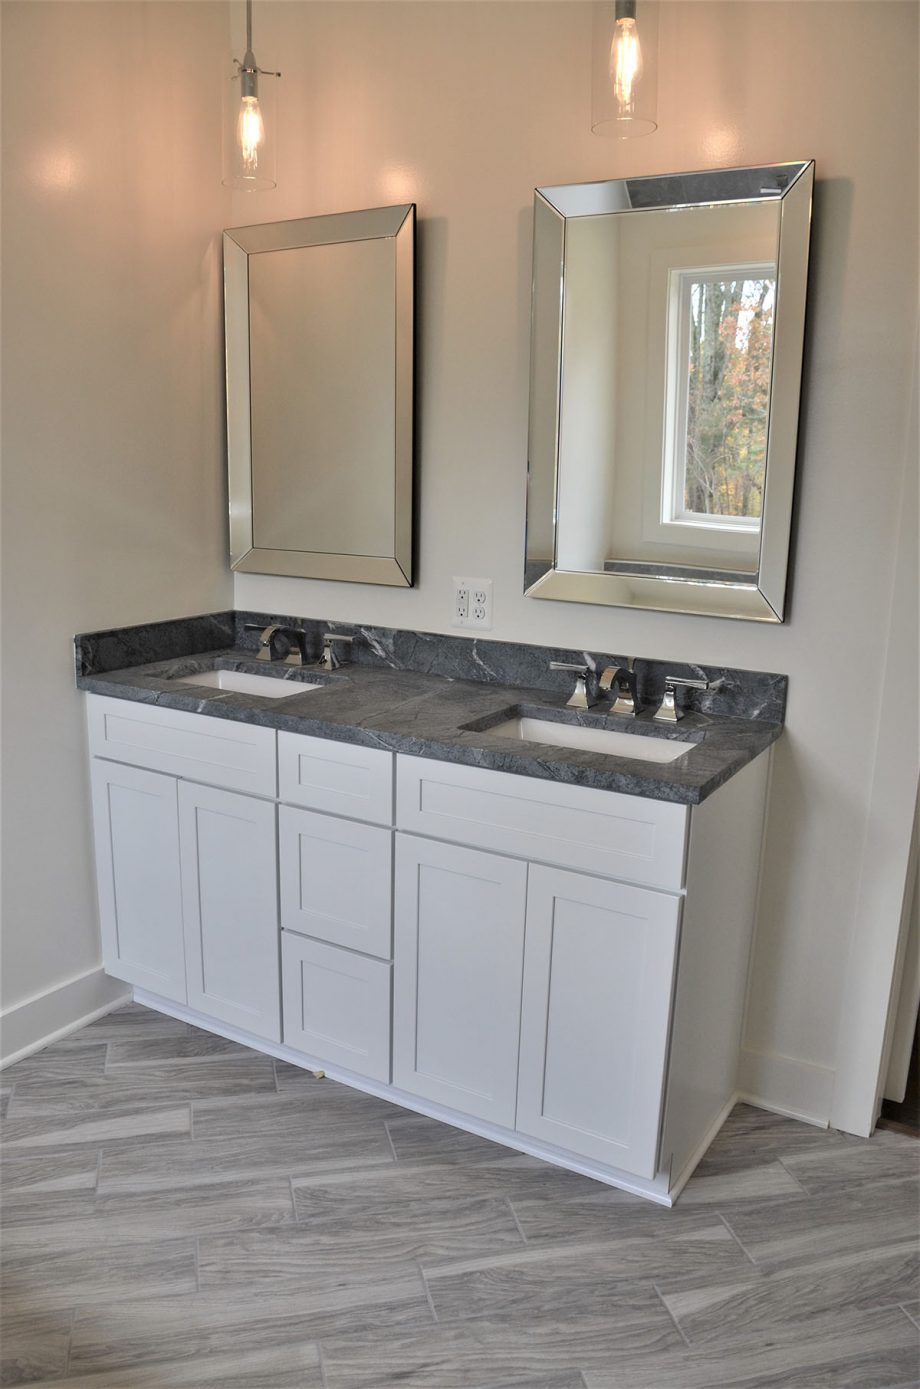 Christal - Master bathroom